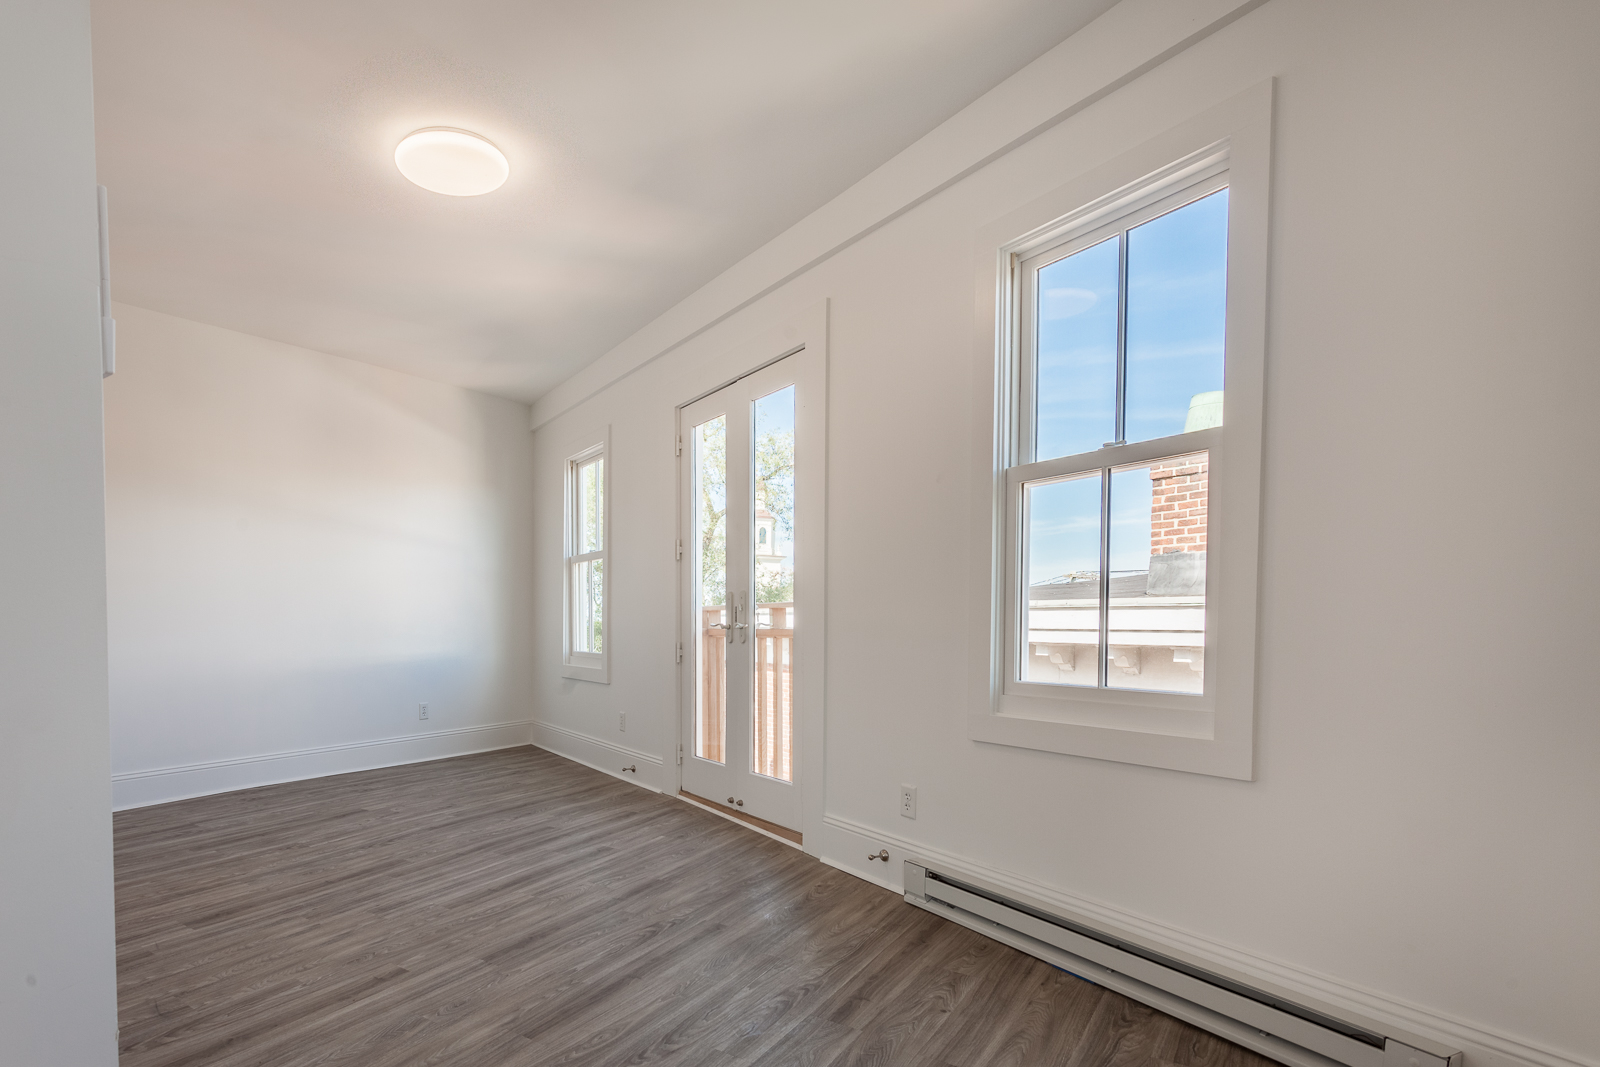 Additional photo for property listing at Broadway Condominium 8-10 Broadway #3 Newport, Rhode Island 02840 United States